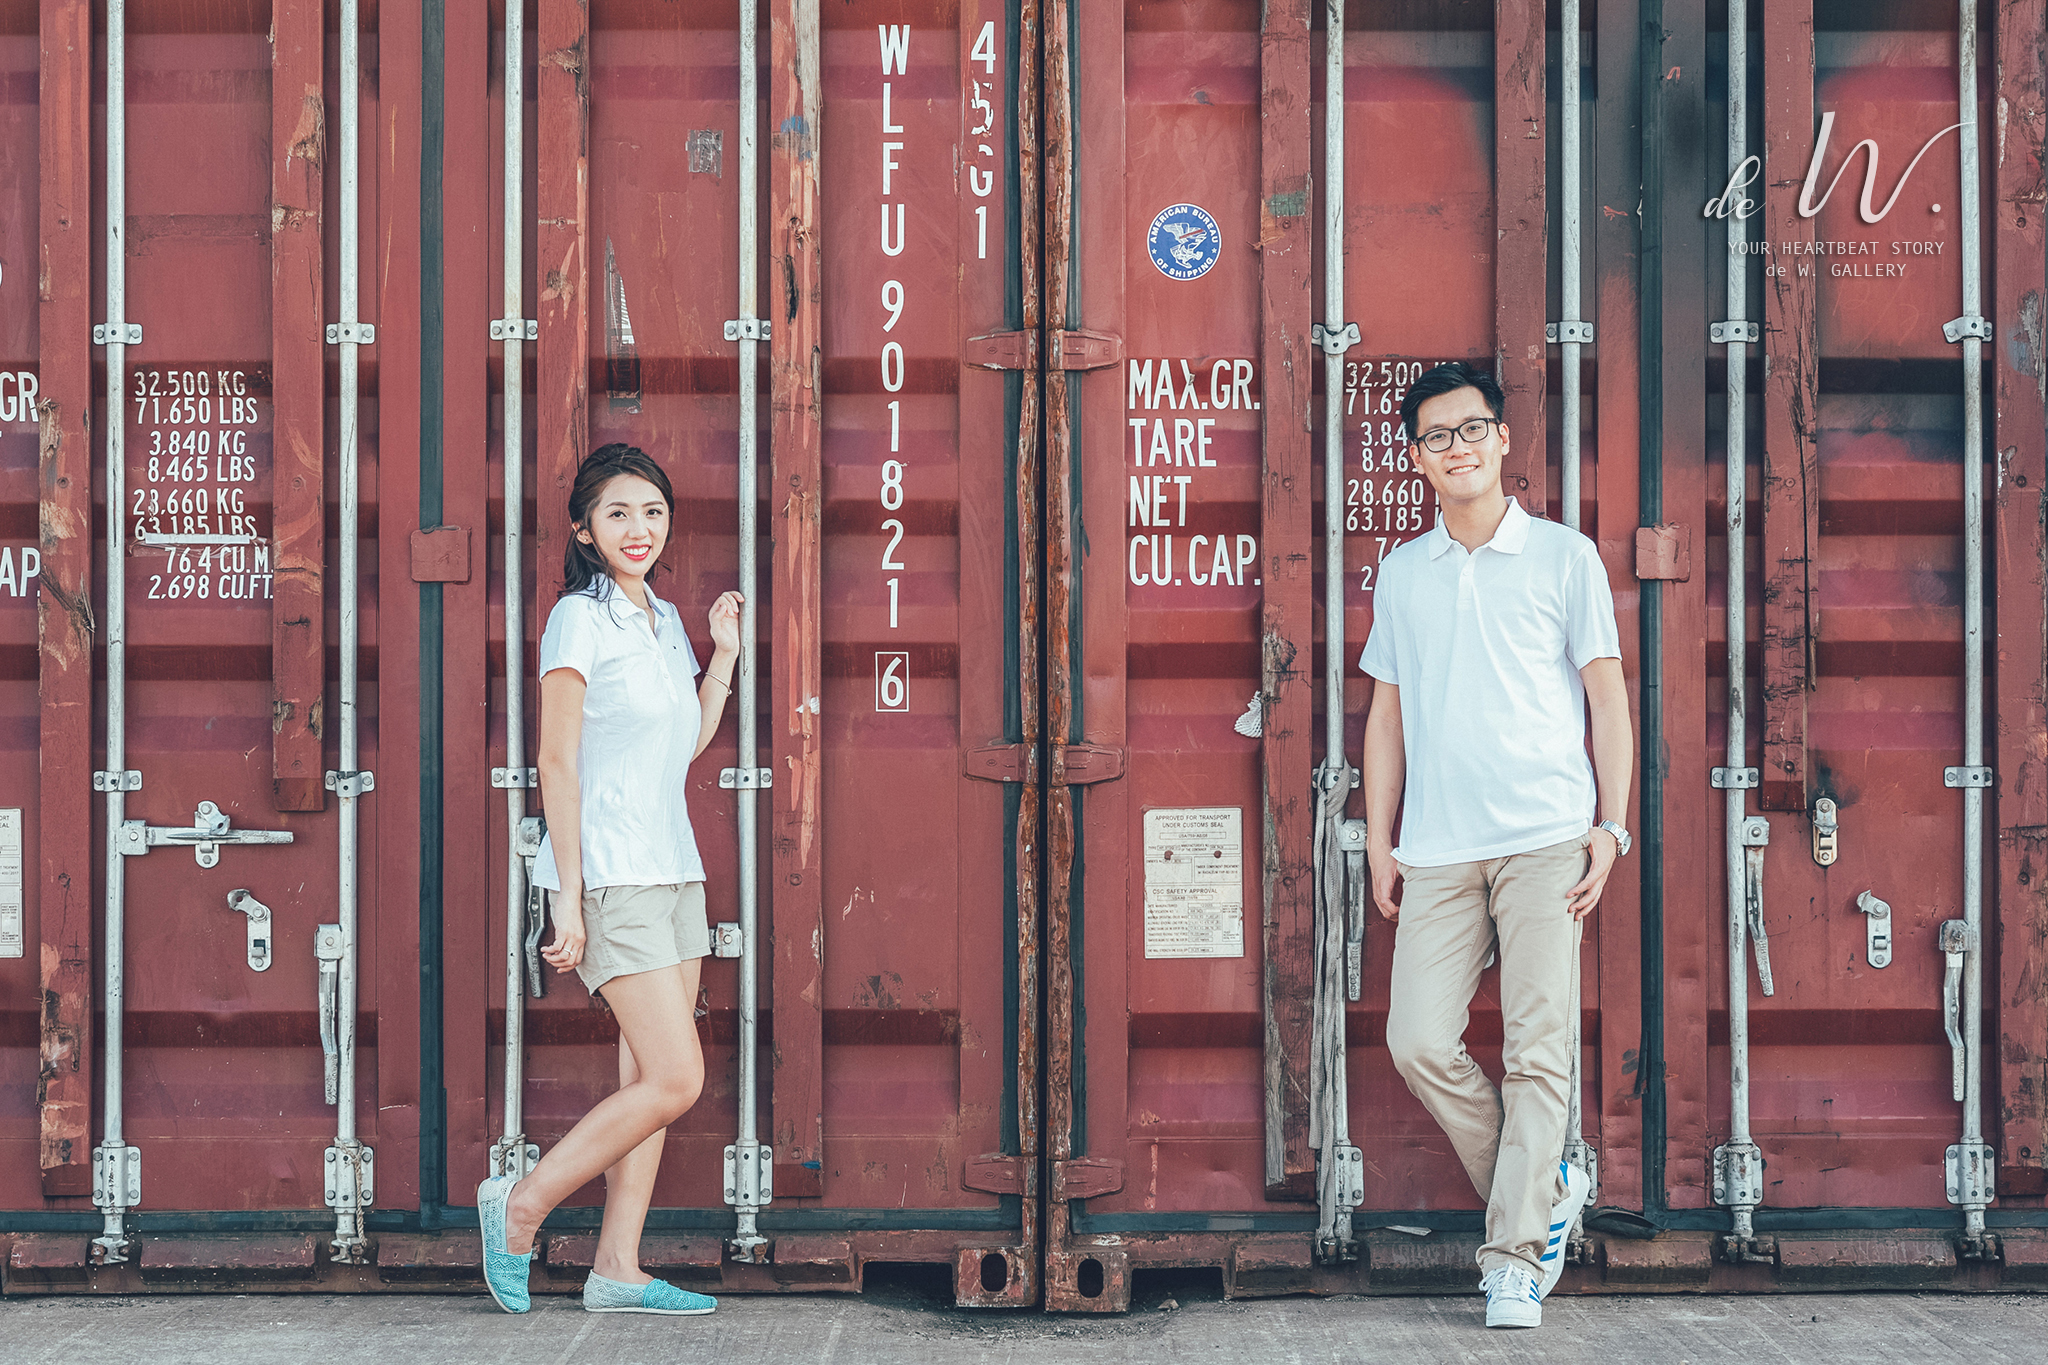 2048 de w gallery Film style hong kong 底片 拍拖 engagement vsco 故事 中環 西環 central-19